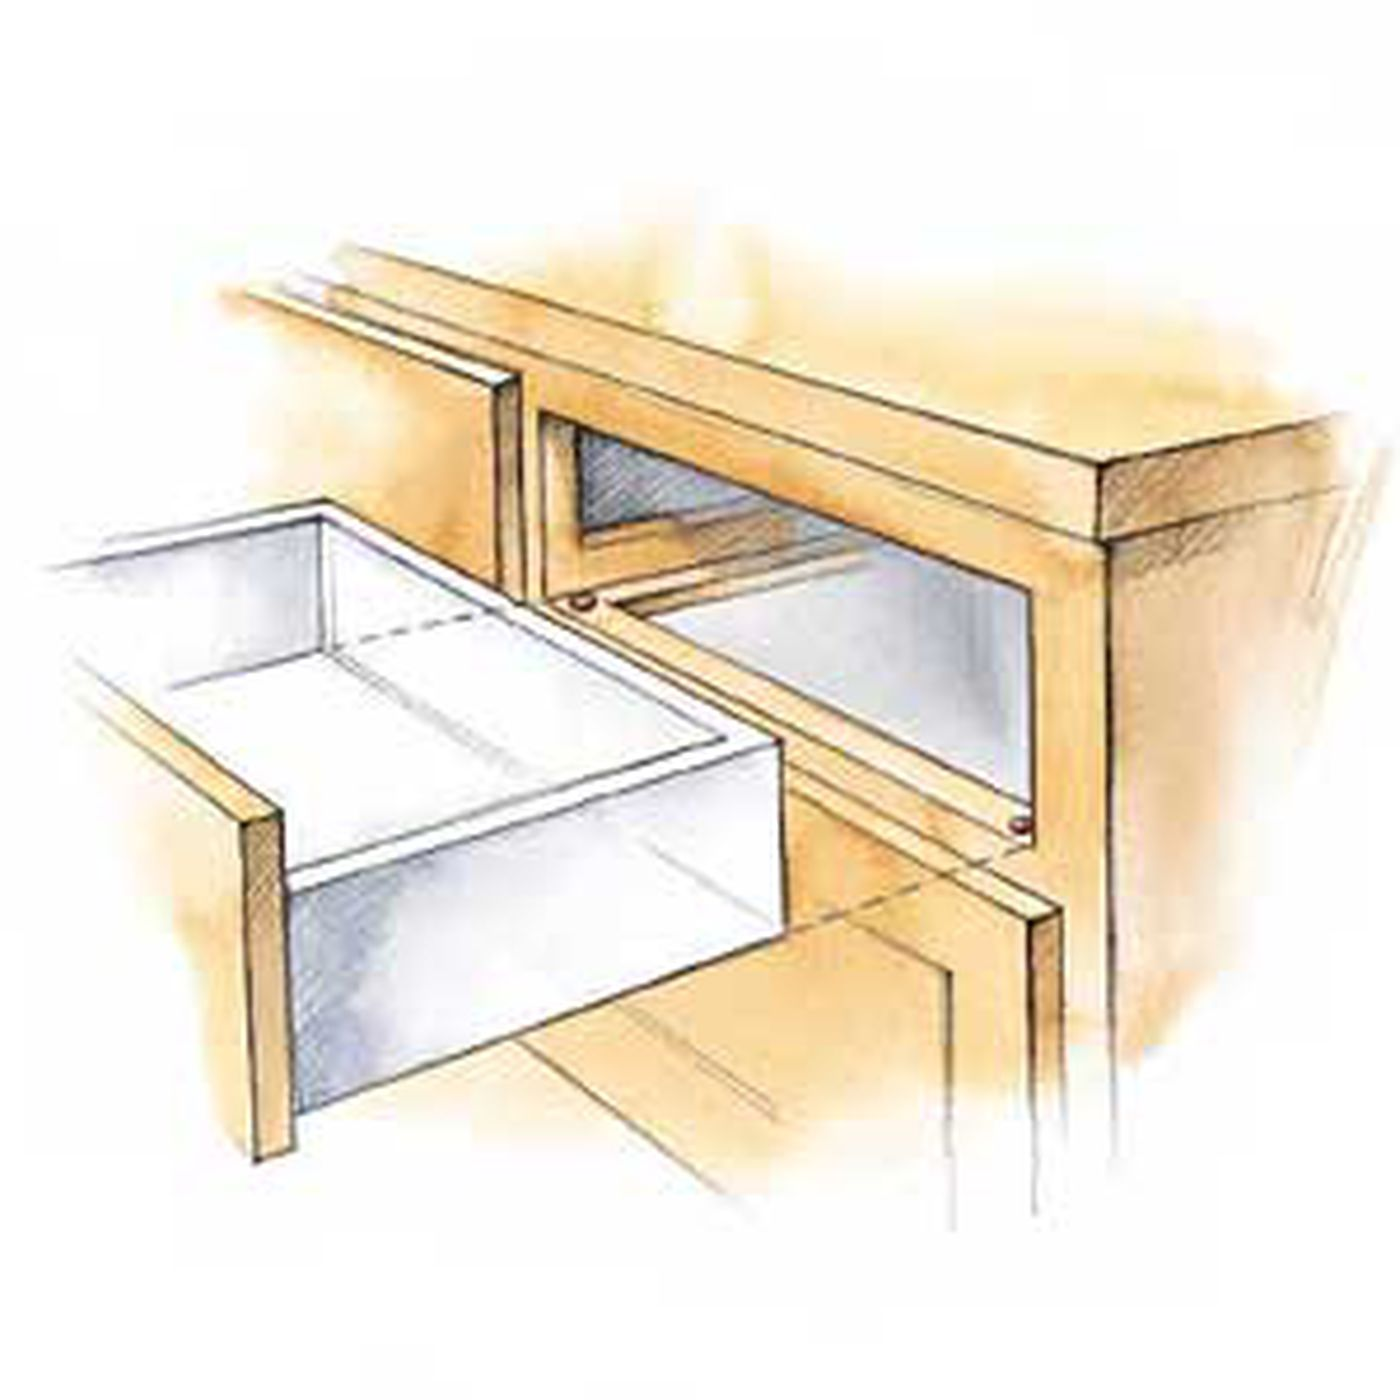 Fast Fix For Worn Drawers This Old House